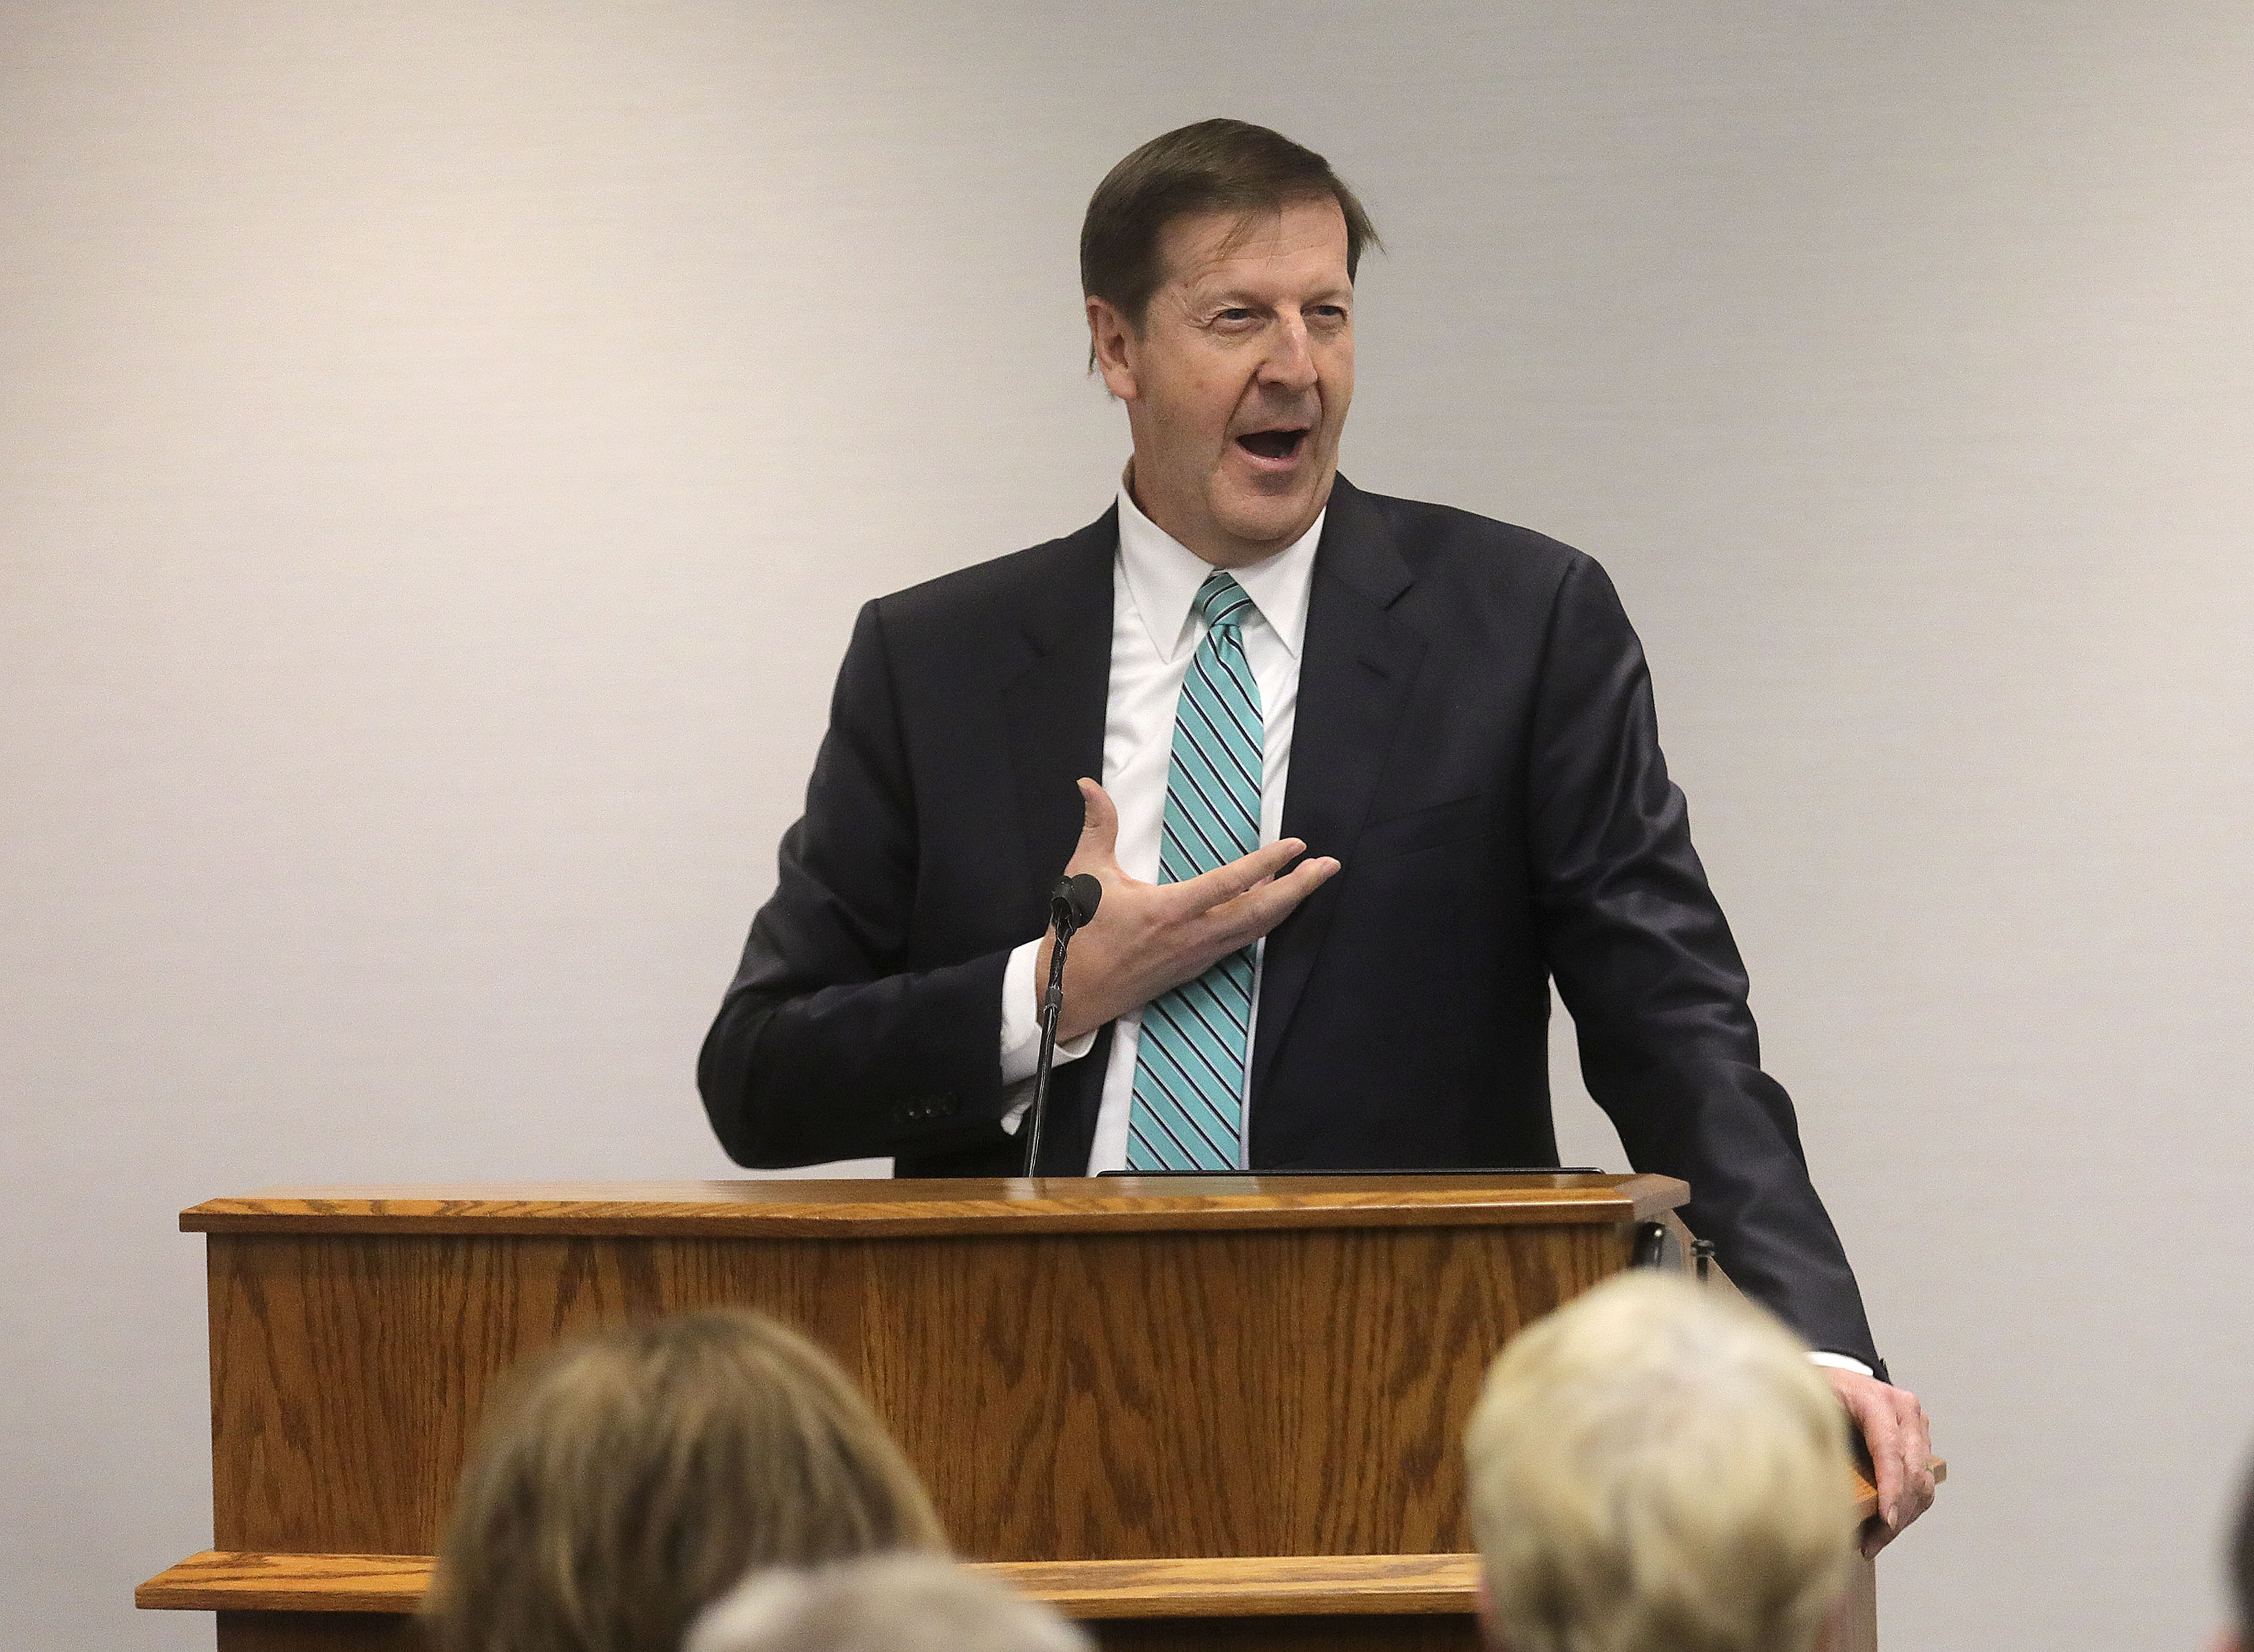 Steve Rockwood, FamilySearch CEO, speaks during the FamilySearch 125th anniversary celebration at the Family History Library in Salt Lake City on Wednesday, Nov. 13, 2019.